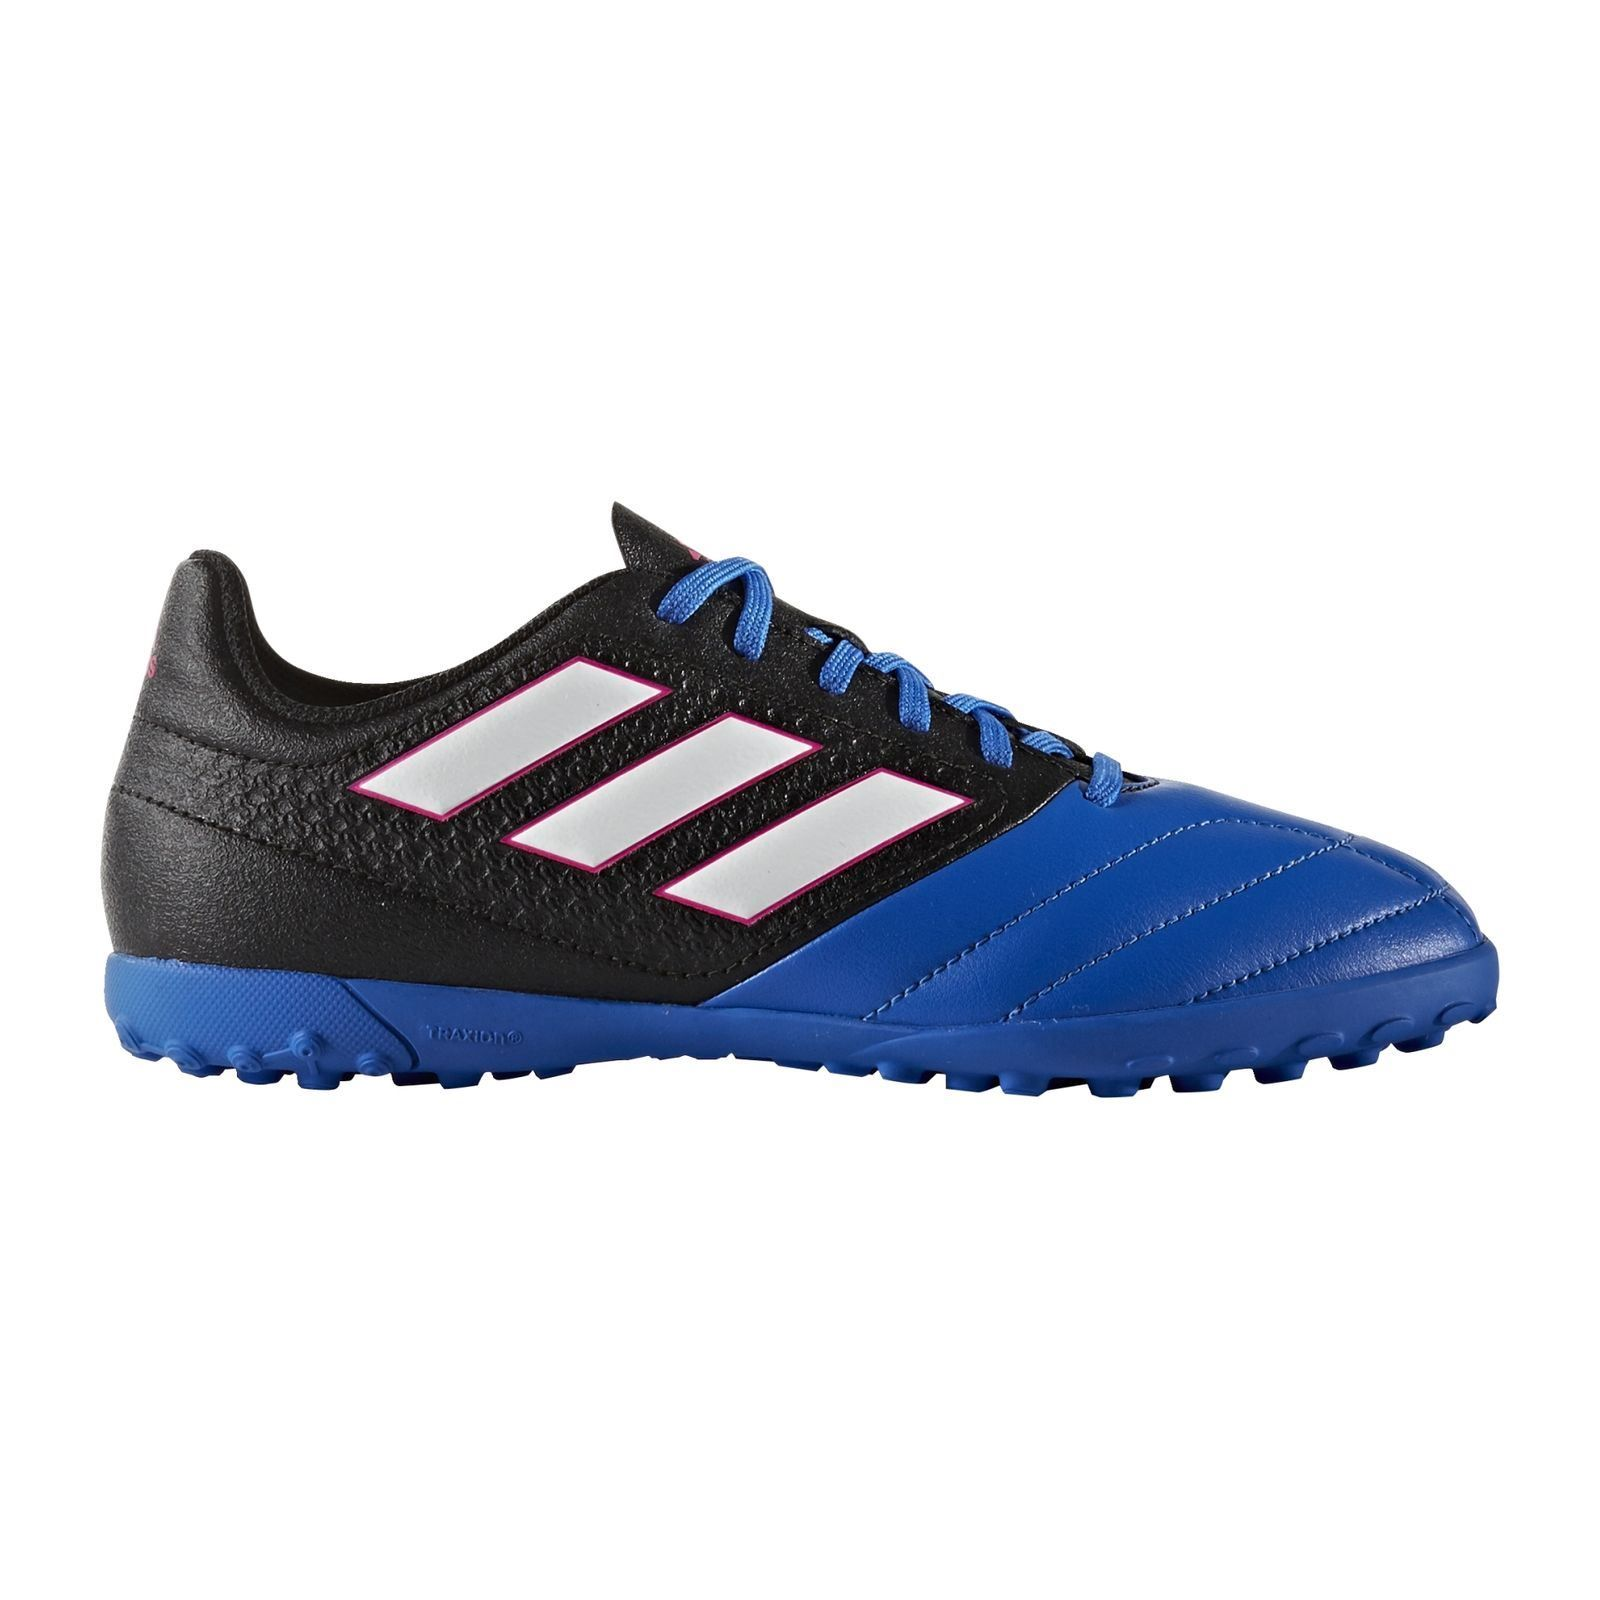 low priced 51e7a 478c2 adidas Performance Ace 17.4 TF J - Chaussures de football - bleu classique